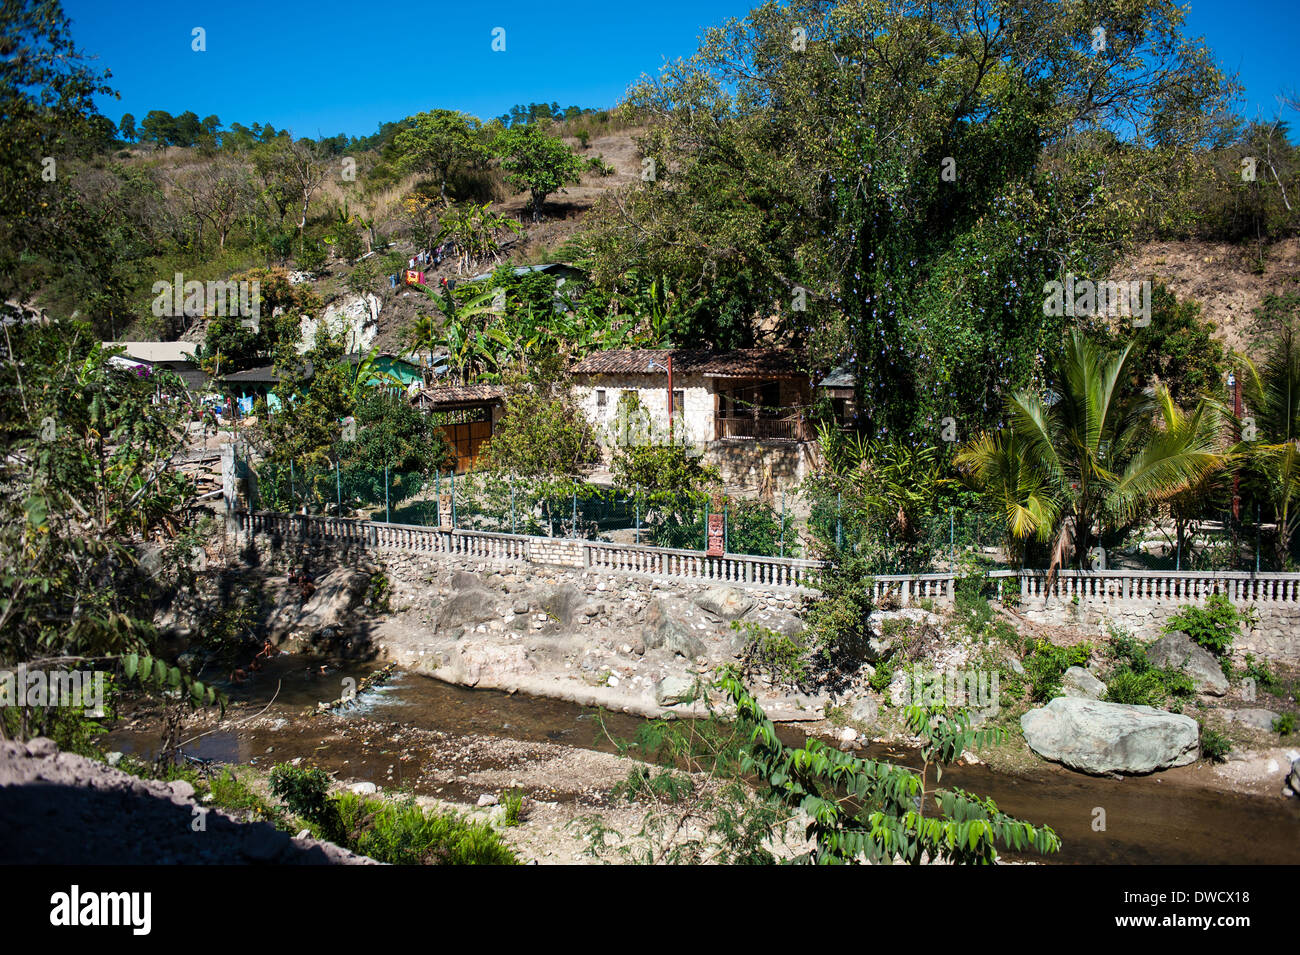 A residential section of Copán Ruinas with the Quebrada Sesesmil flowing beneath. - Stock Image